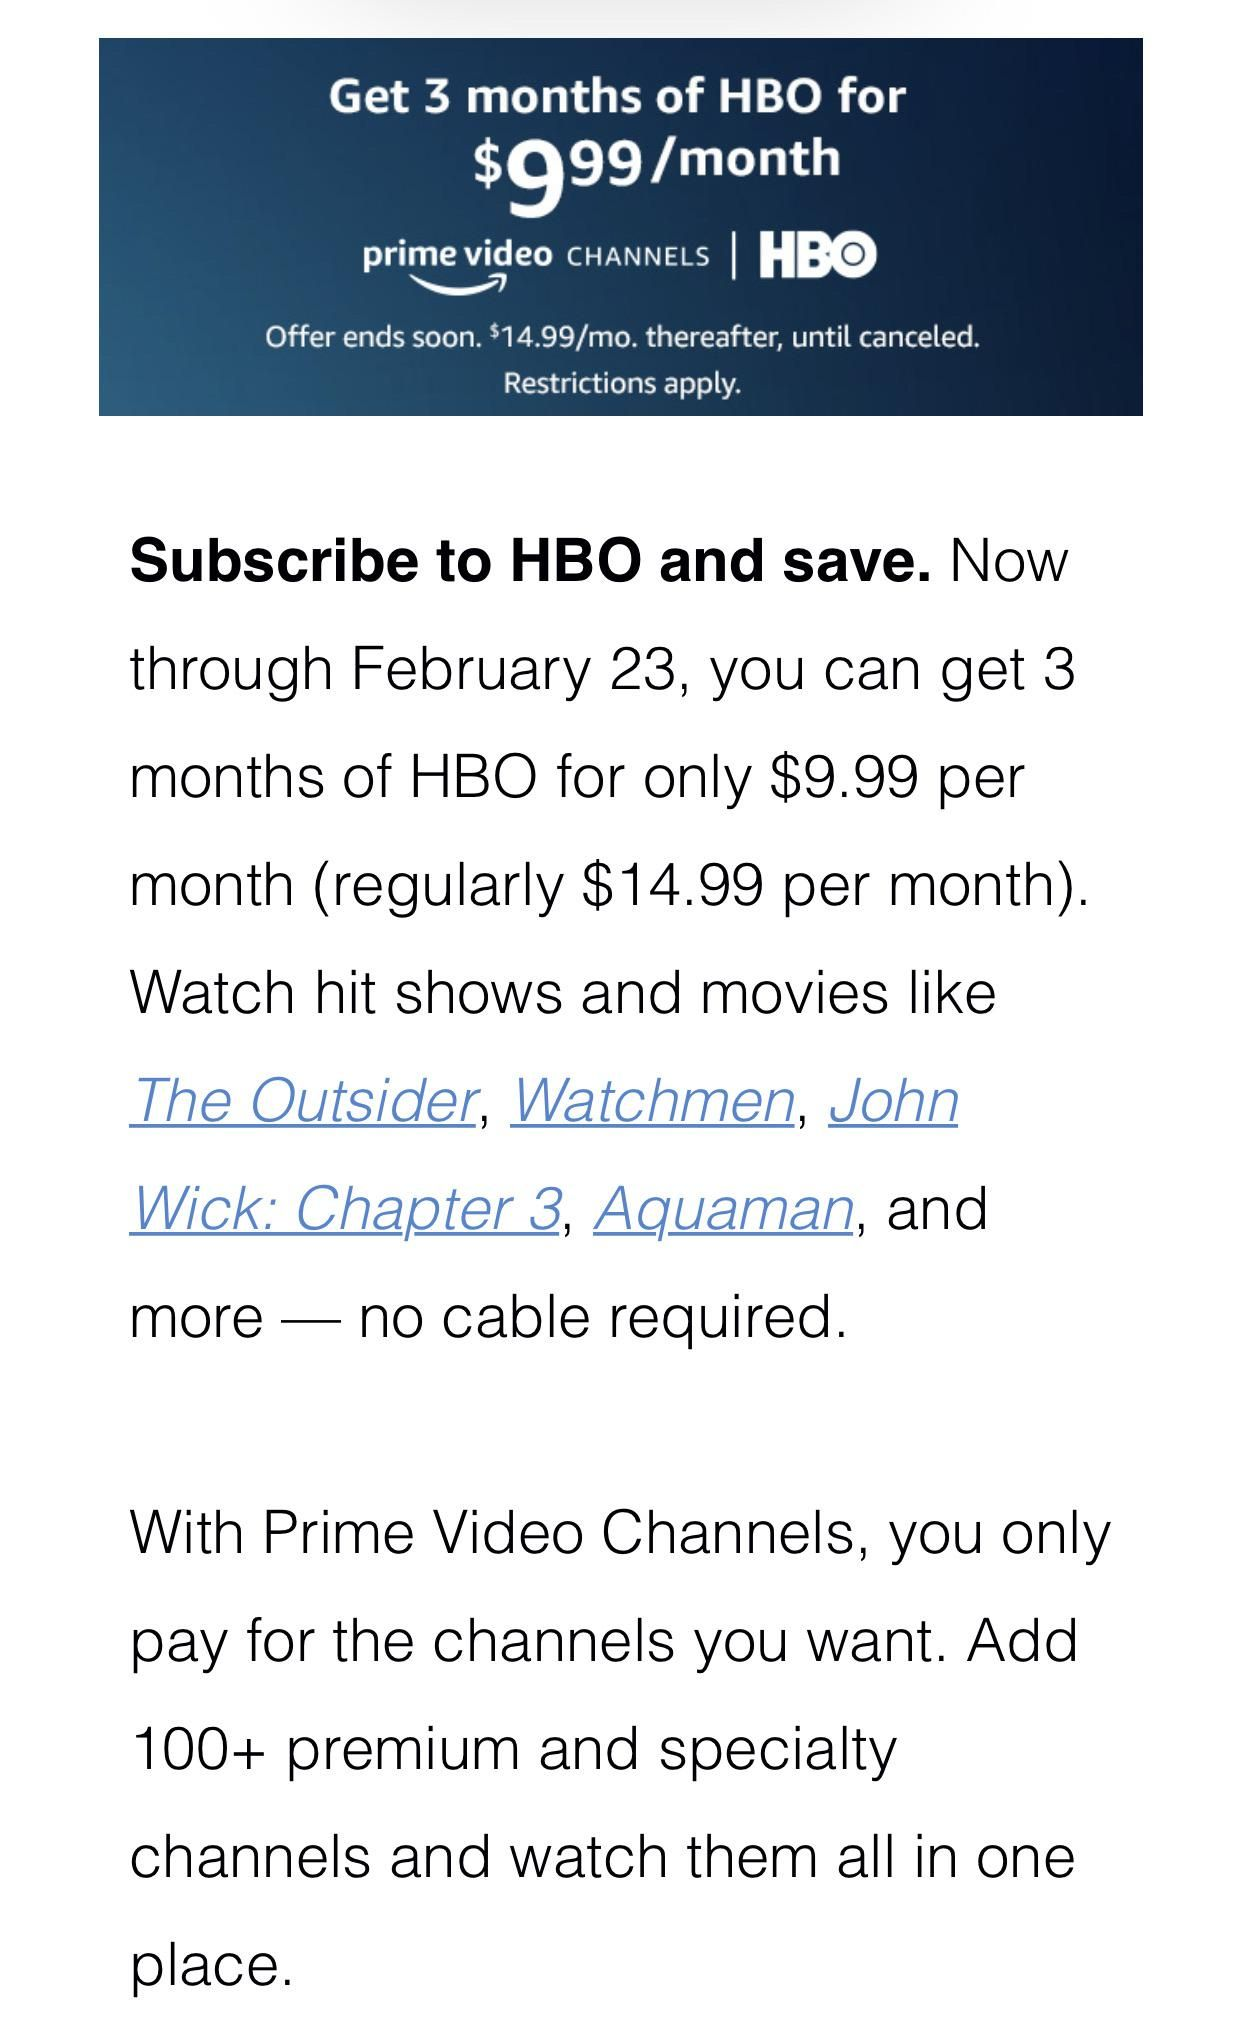 Get 3 months of hbo for 999month via amazon prime video